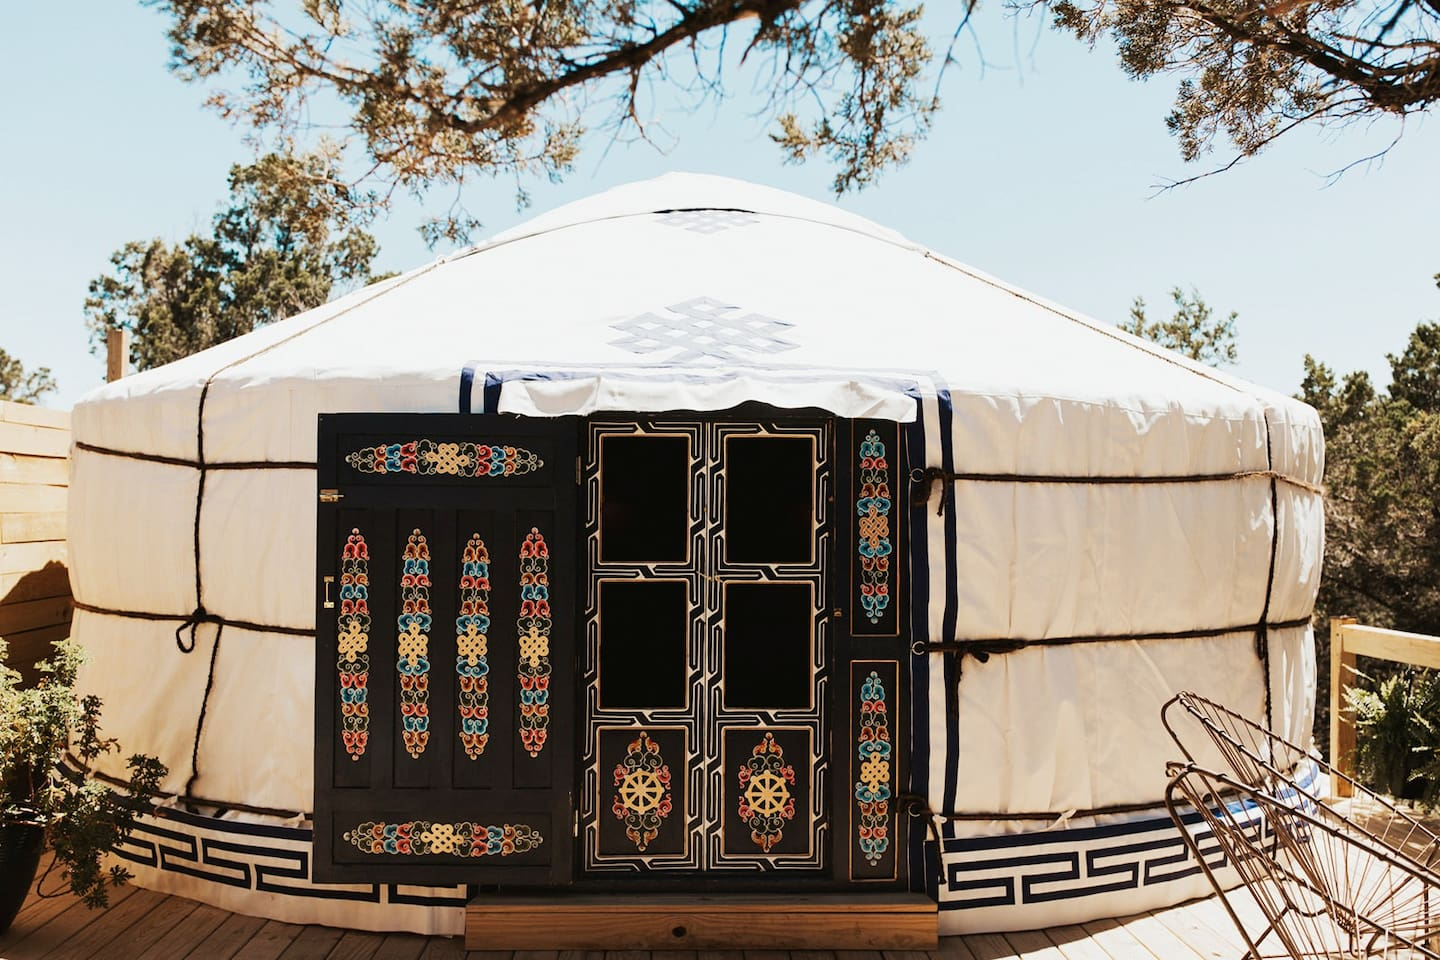 The average cost to stay in this yurt is $315